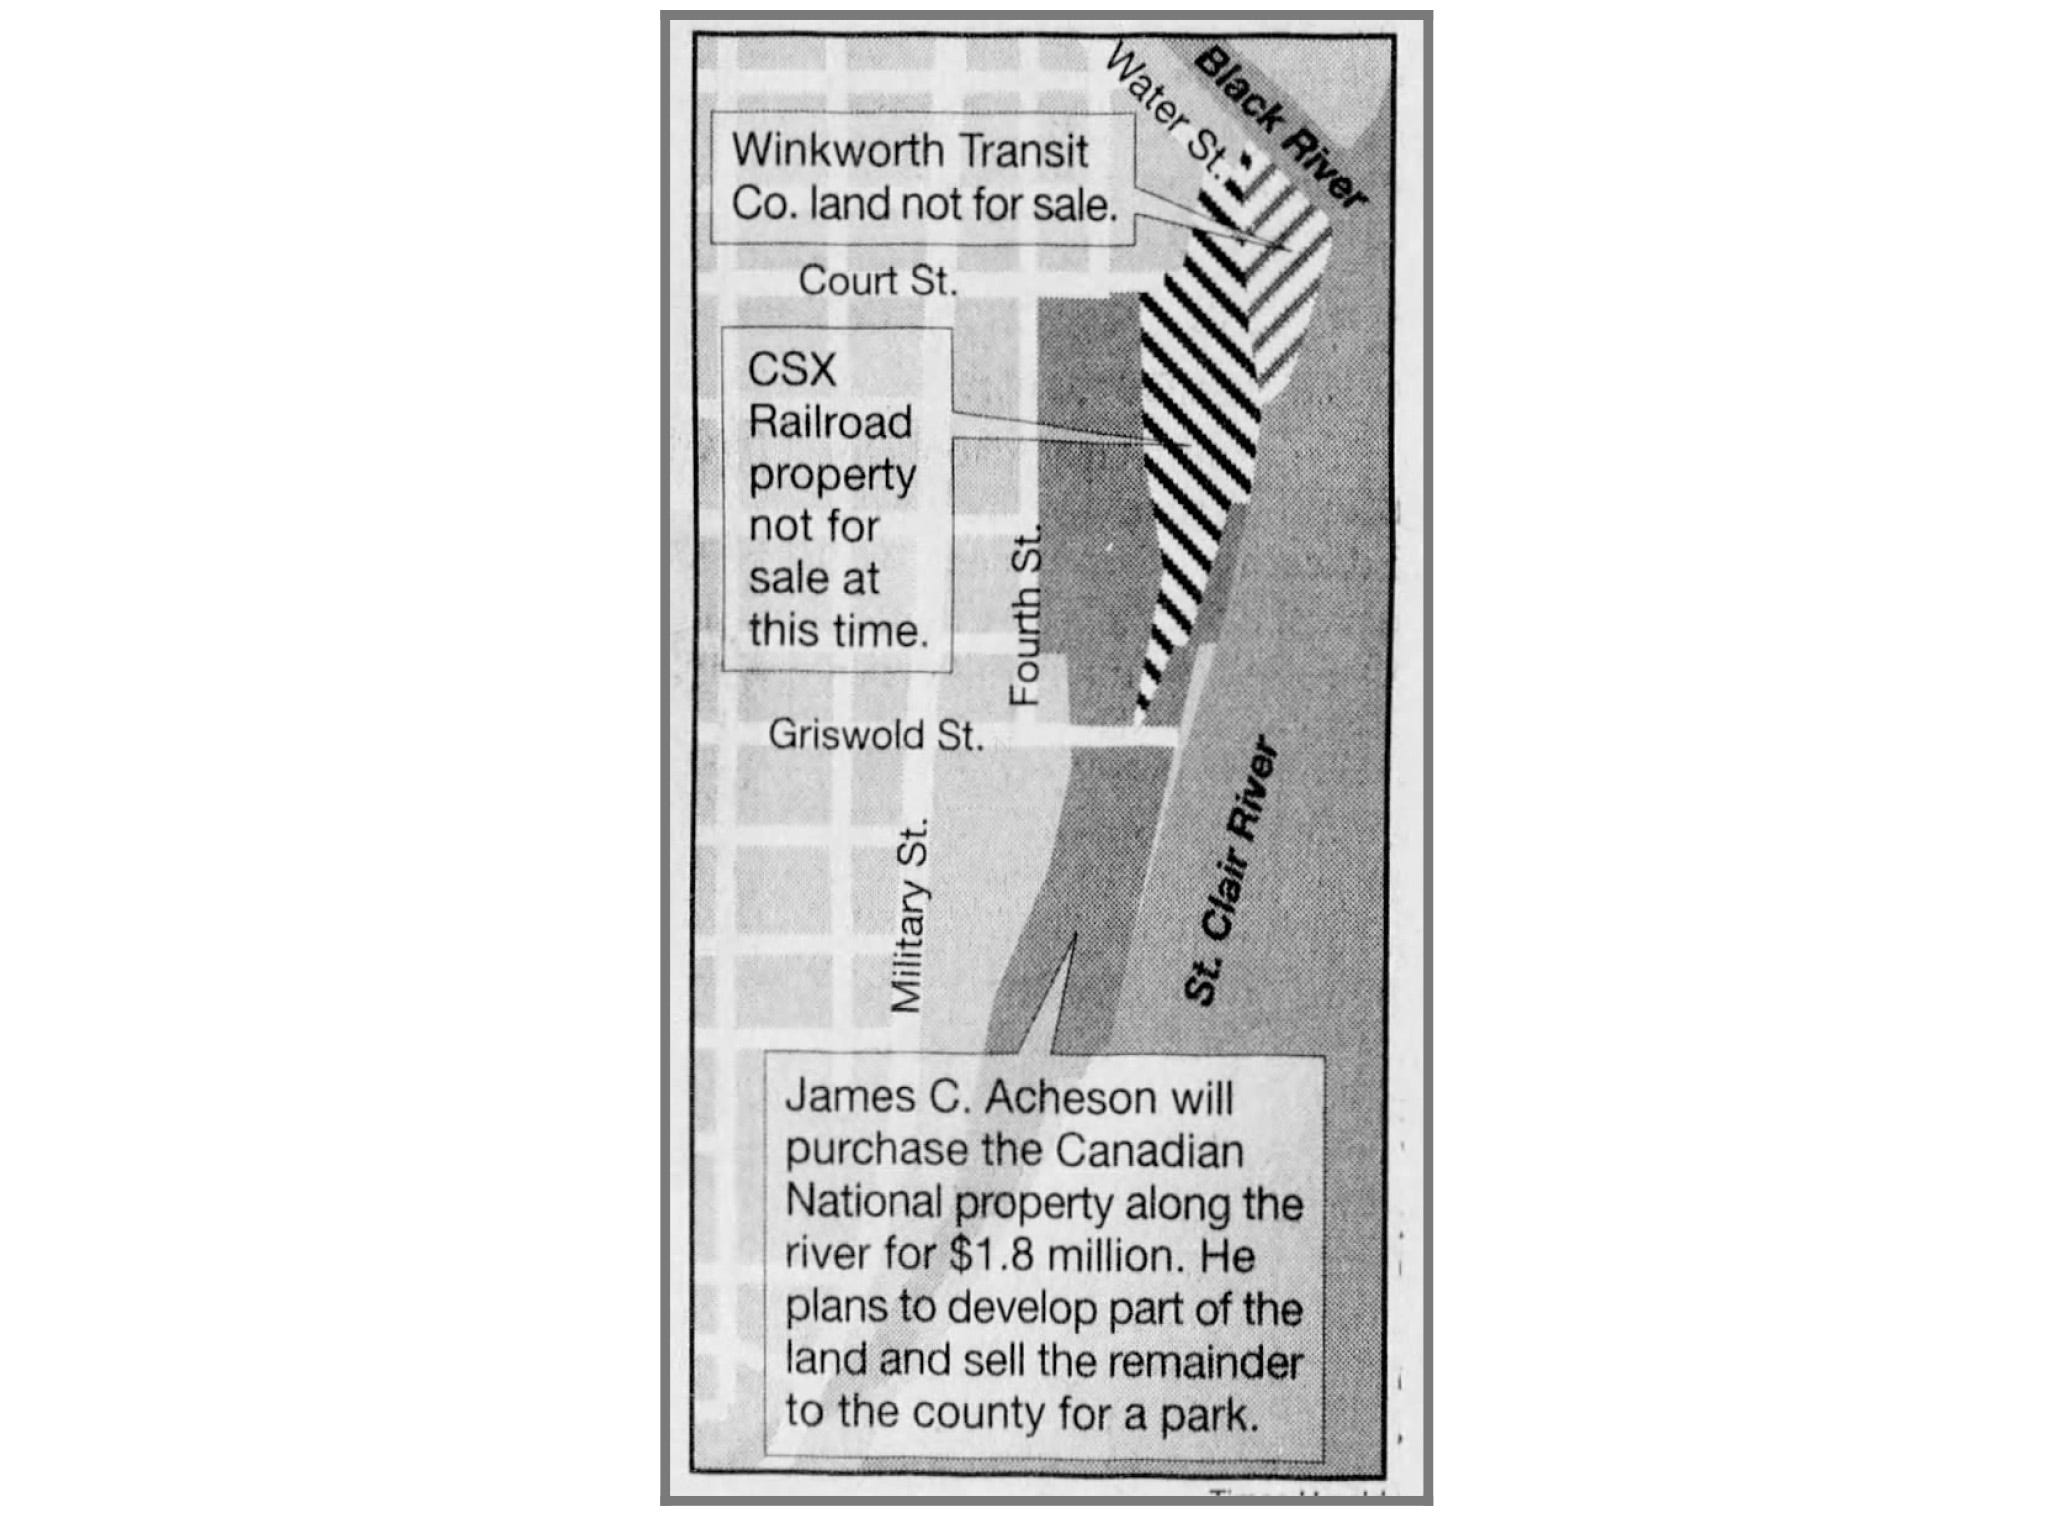 A May 1999 newspaper clipping shows the property that will be purchased by James C. Acheson.